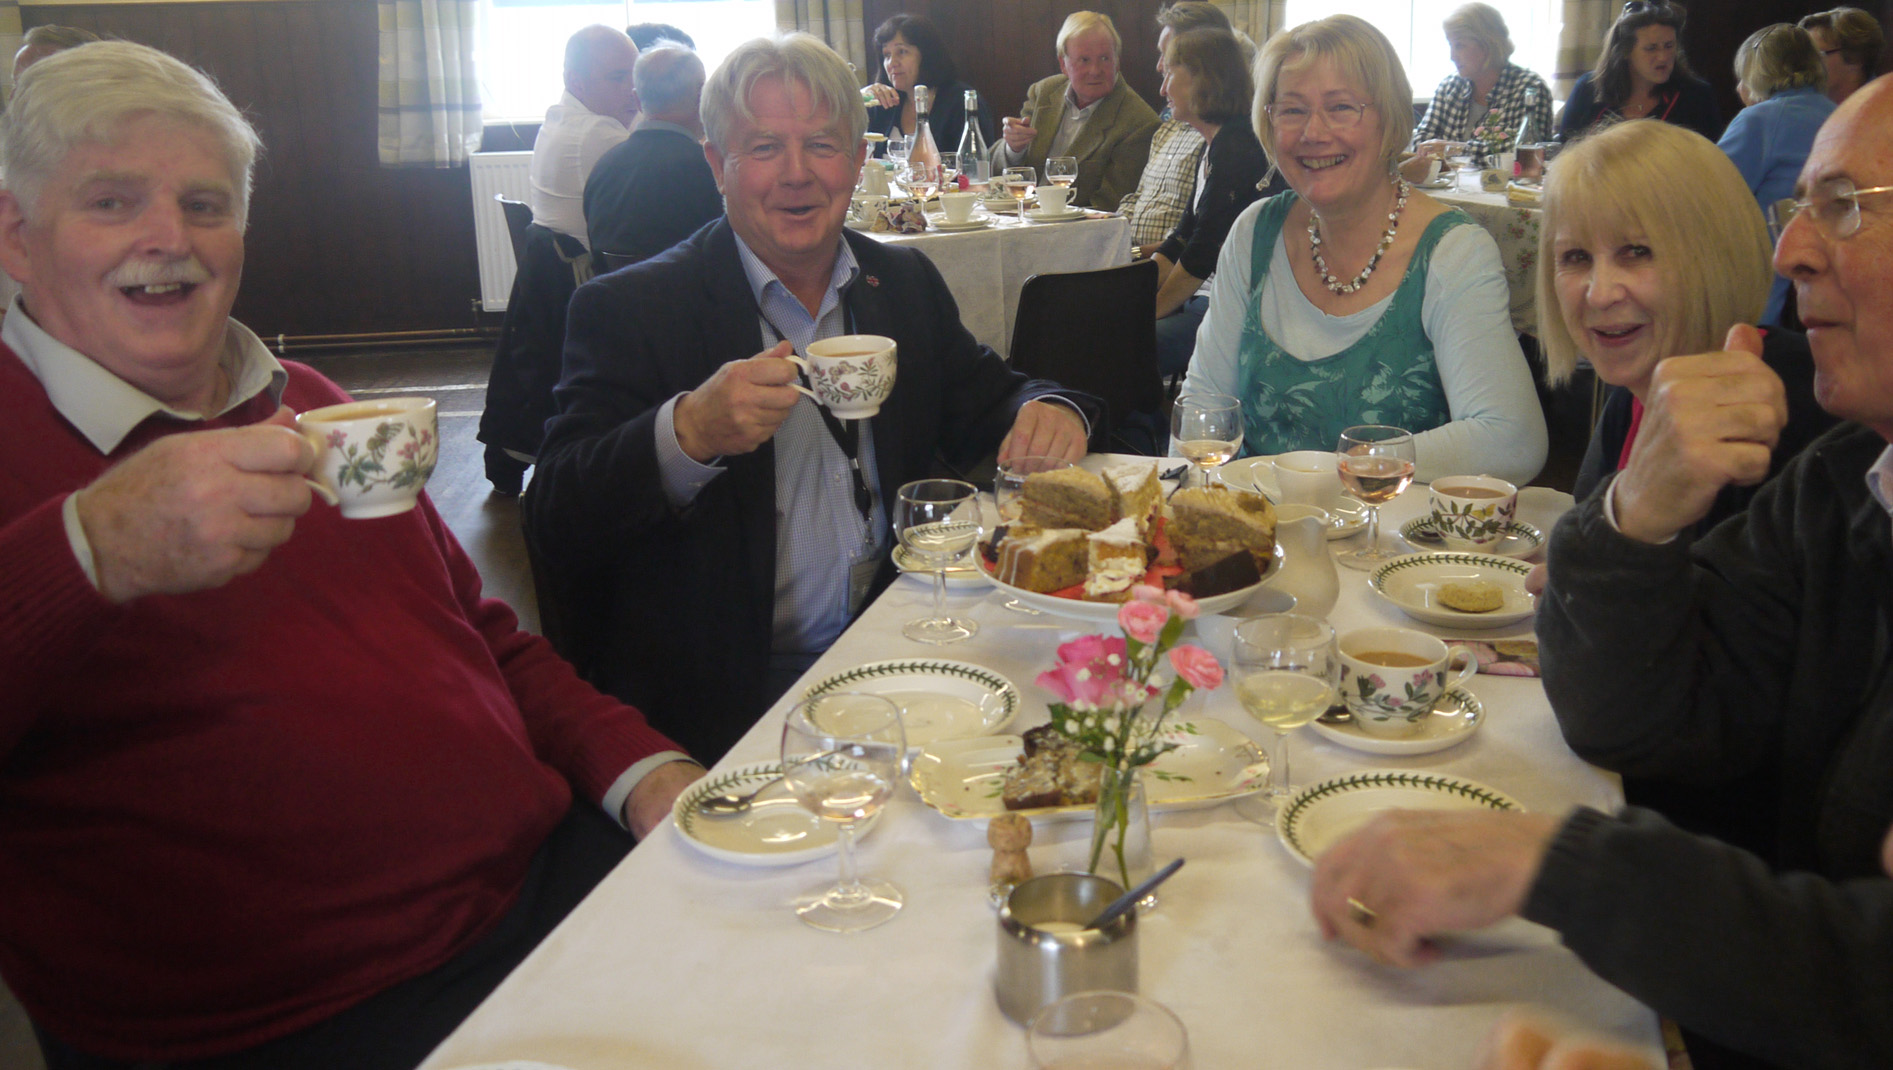 Henry Anderson, Bill Grant MP, and Barbara Anderson at the Afternoon Tea